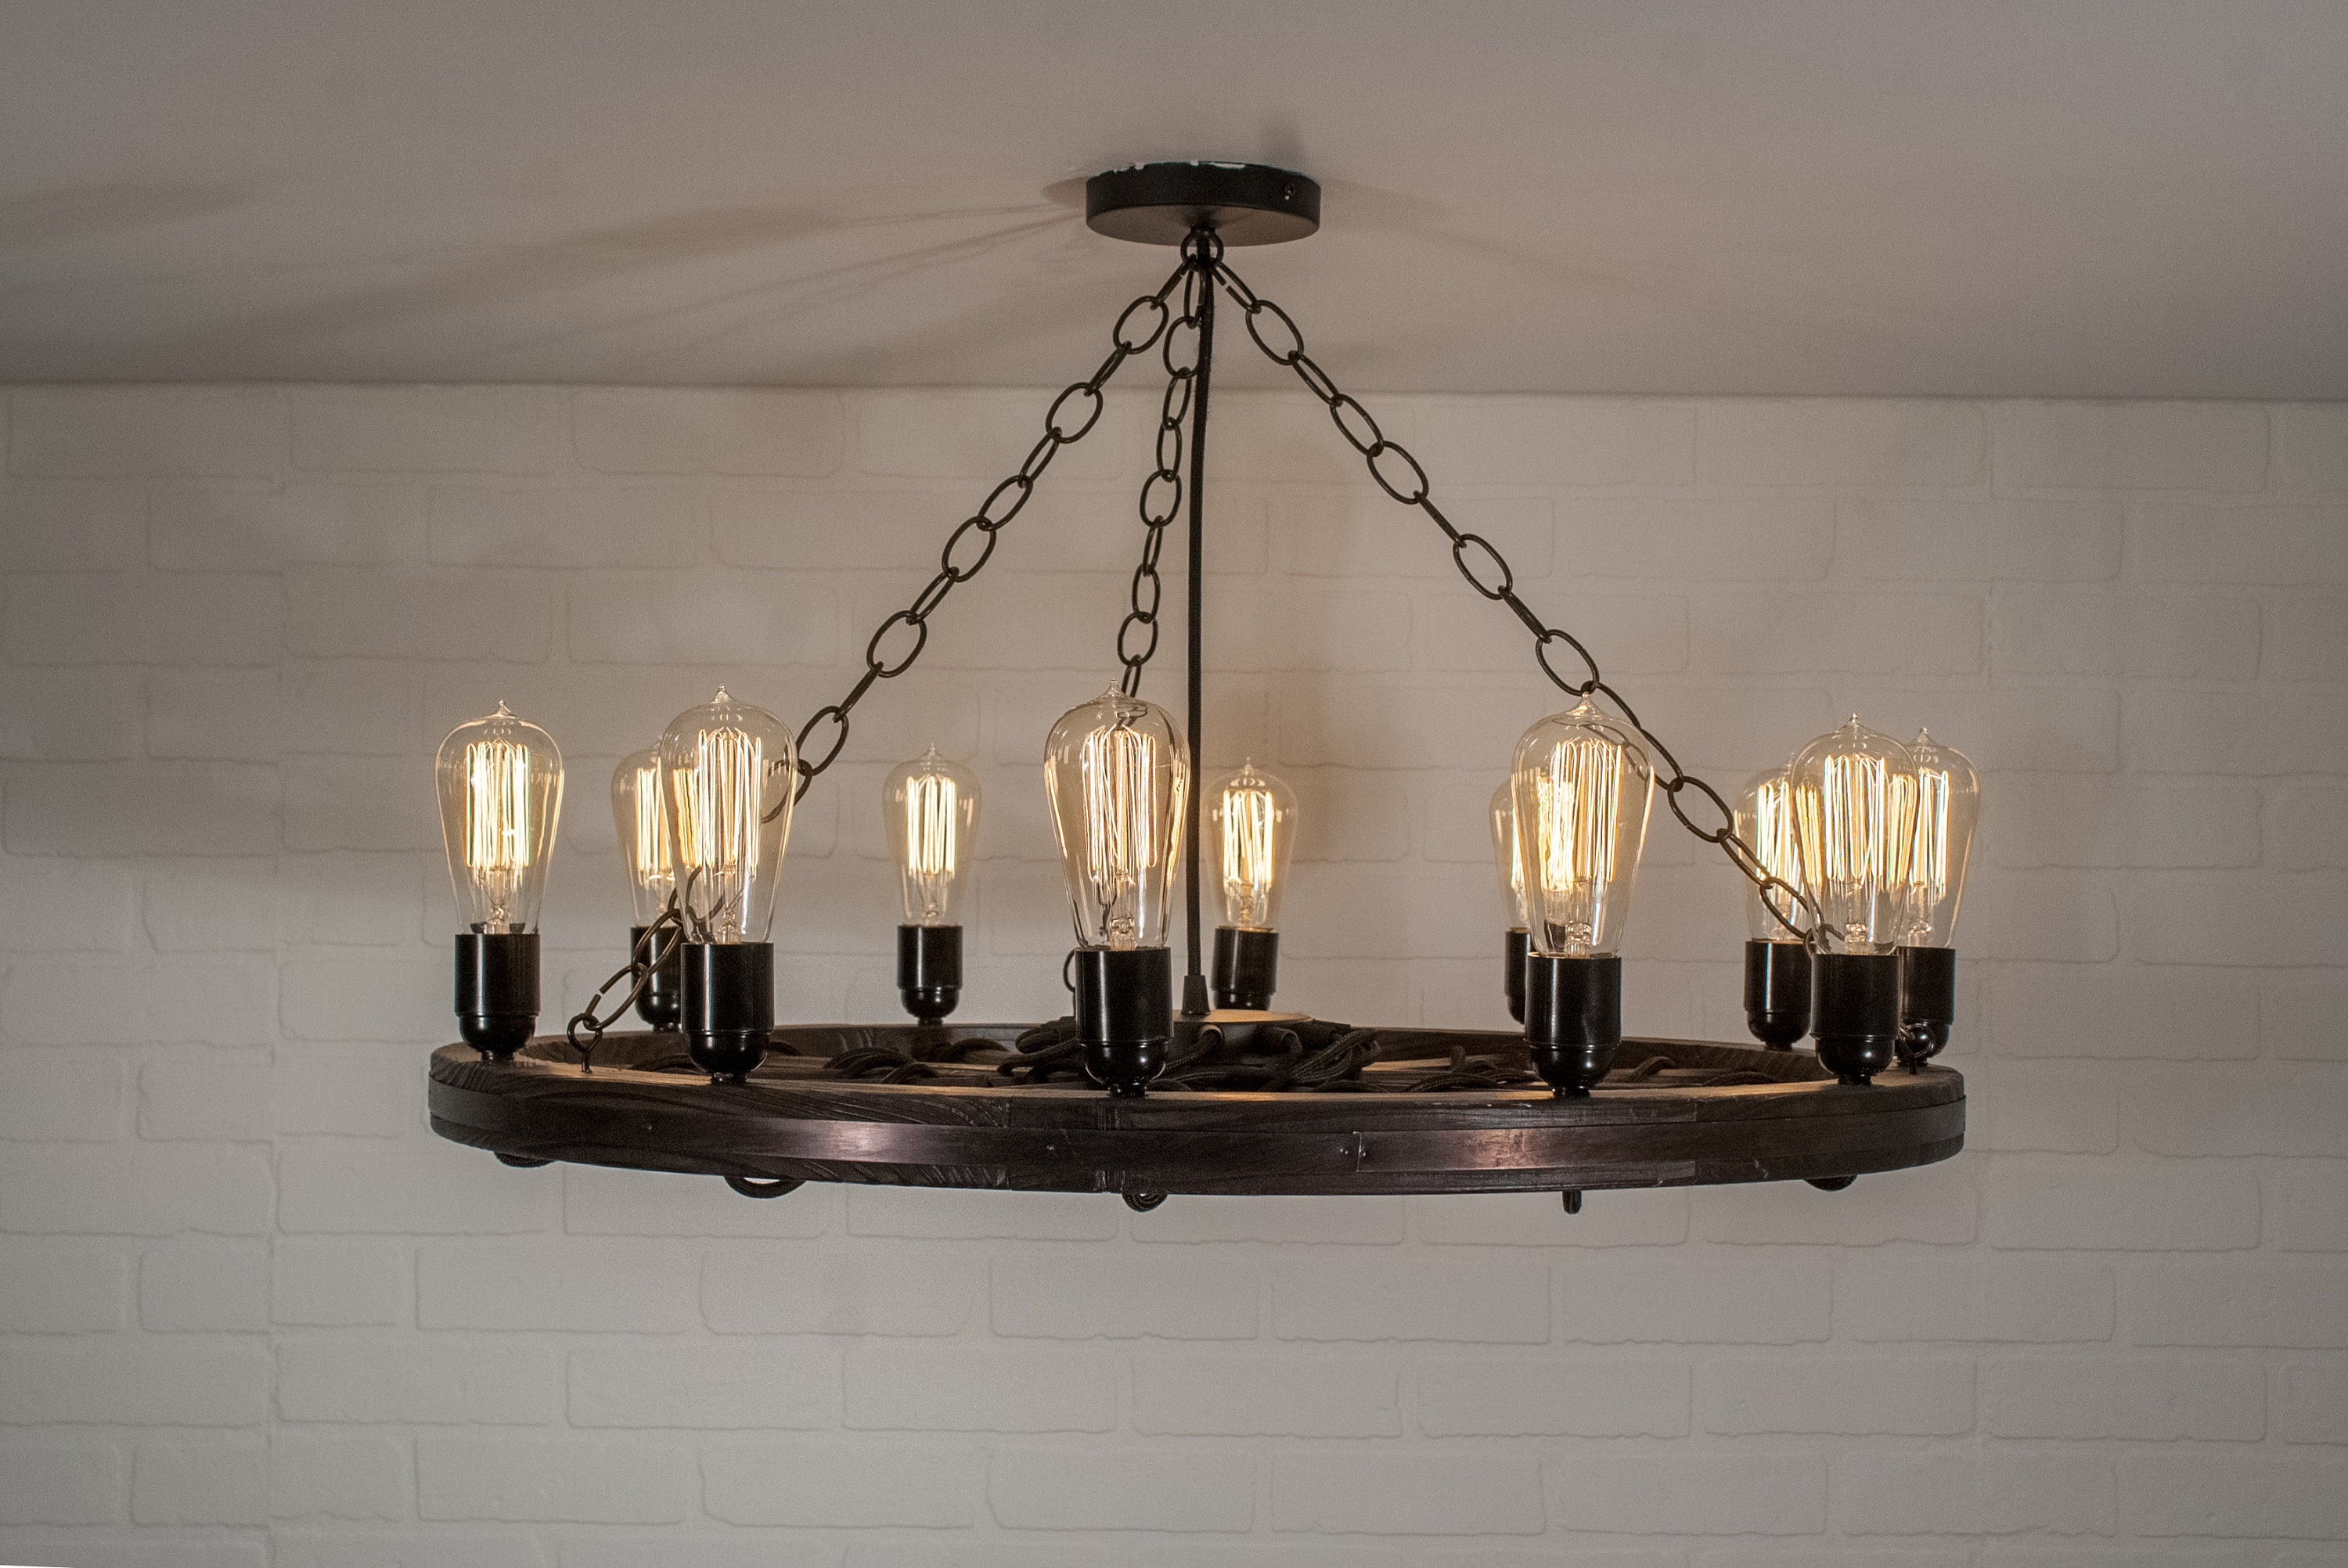 Wagon wheel light with 12 edison bulbs farmhouse chandelier lighting rustic ceiling light fixture